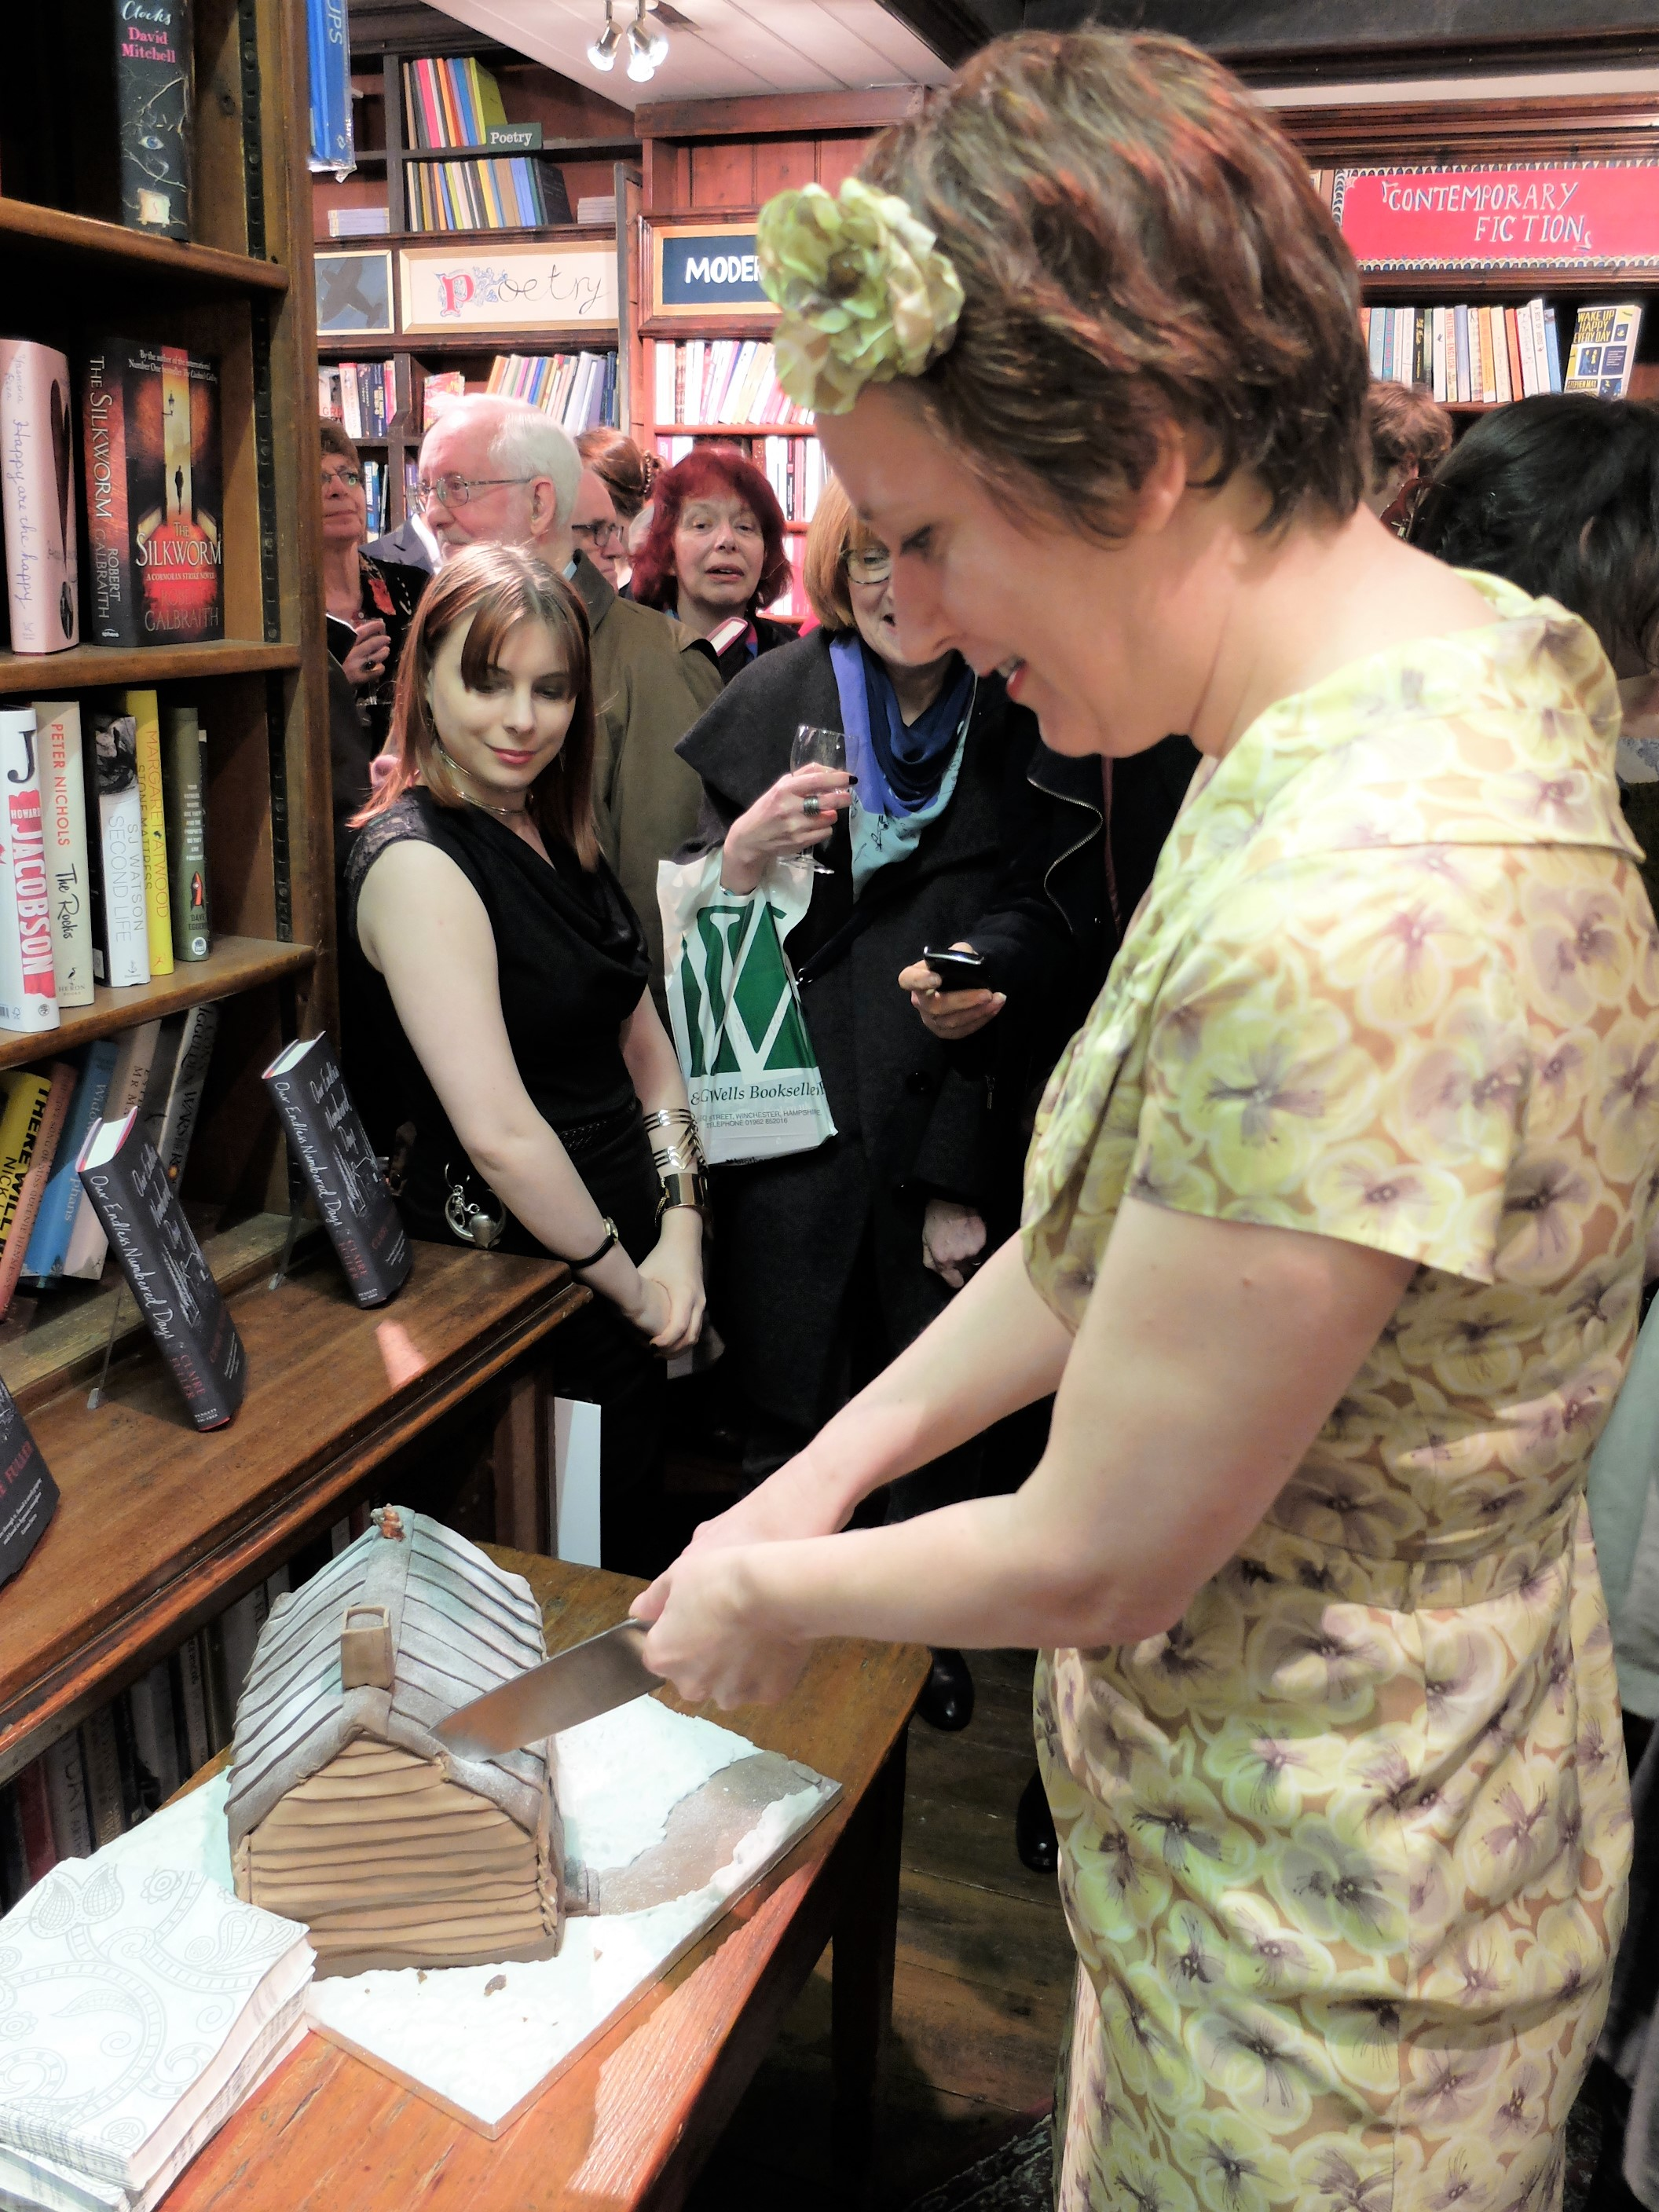 Claire Fuller's Most Memorable Book Event